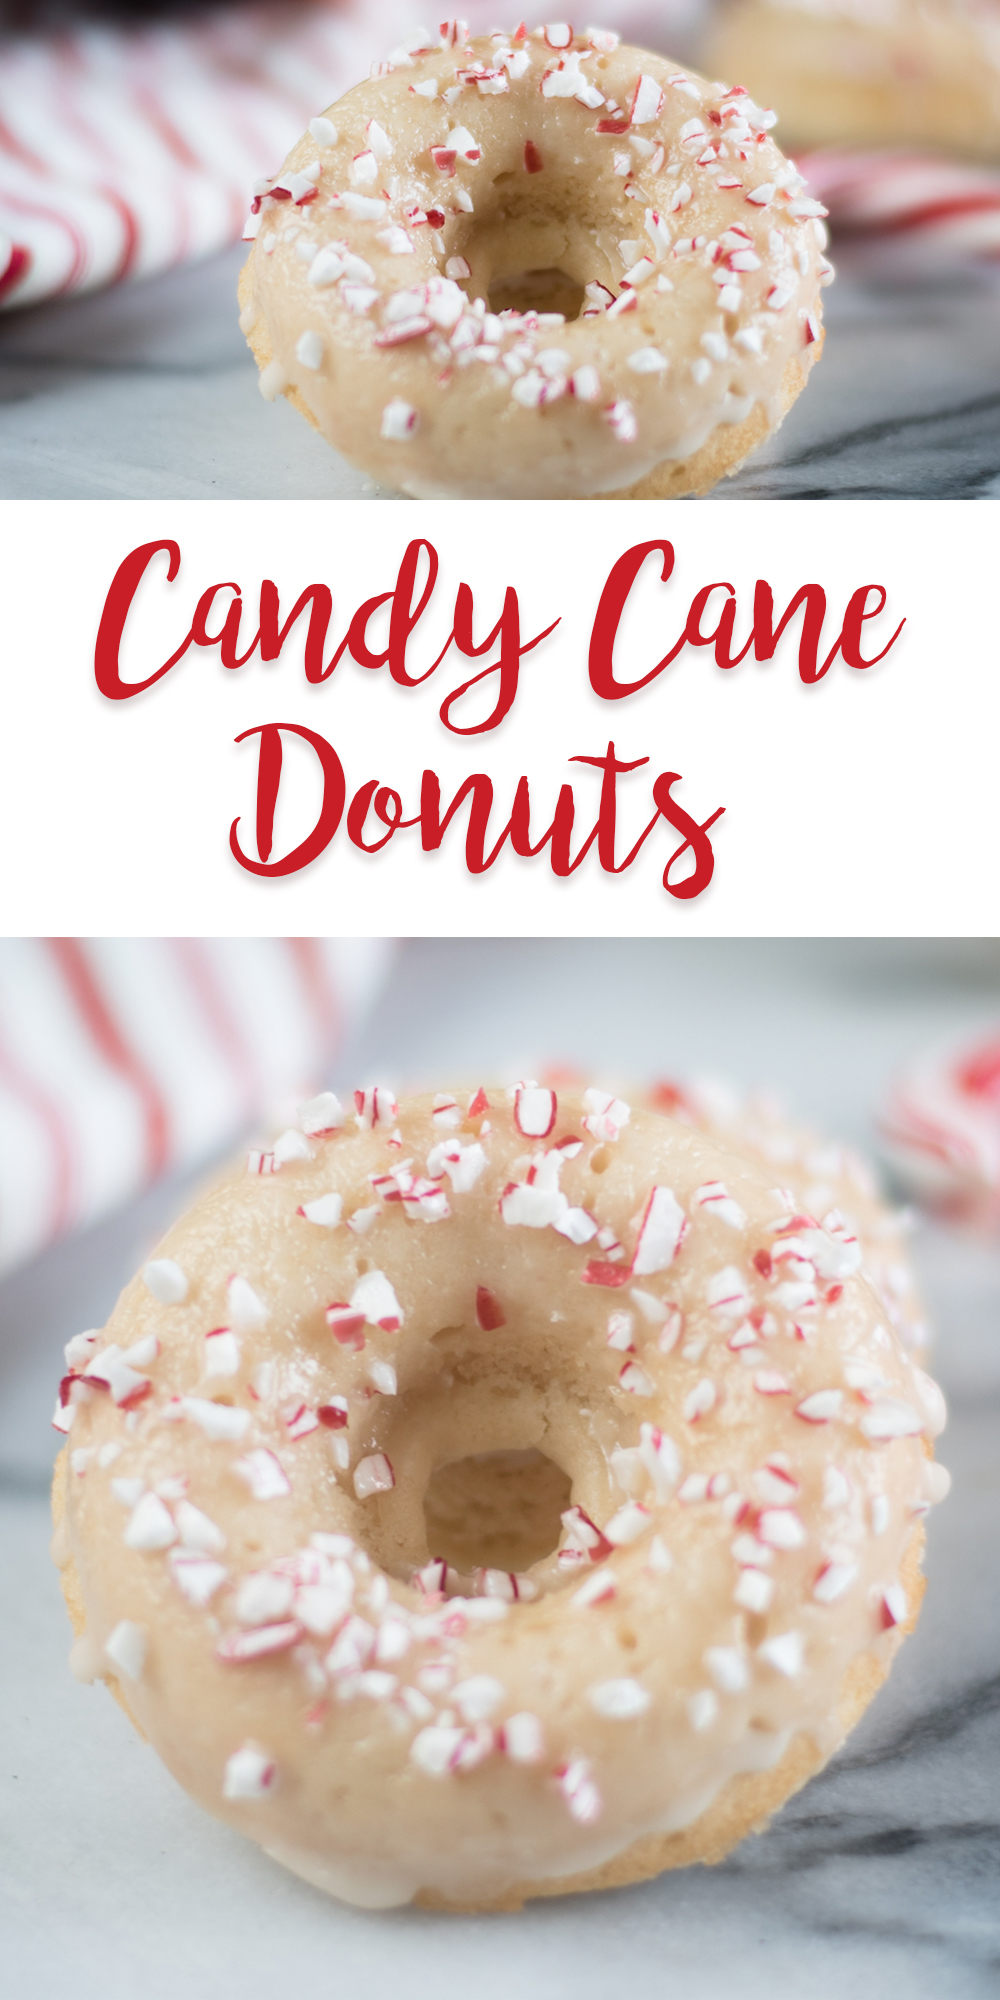 These Candy Cane Donuts would make for a very festive breakfast. Perfect for Christmas morning! #Vegan #recipes #Christmas #Holiday #Veganrecipes #breakfast